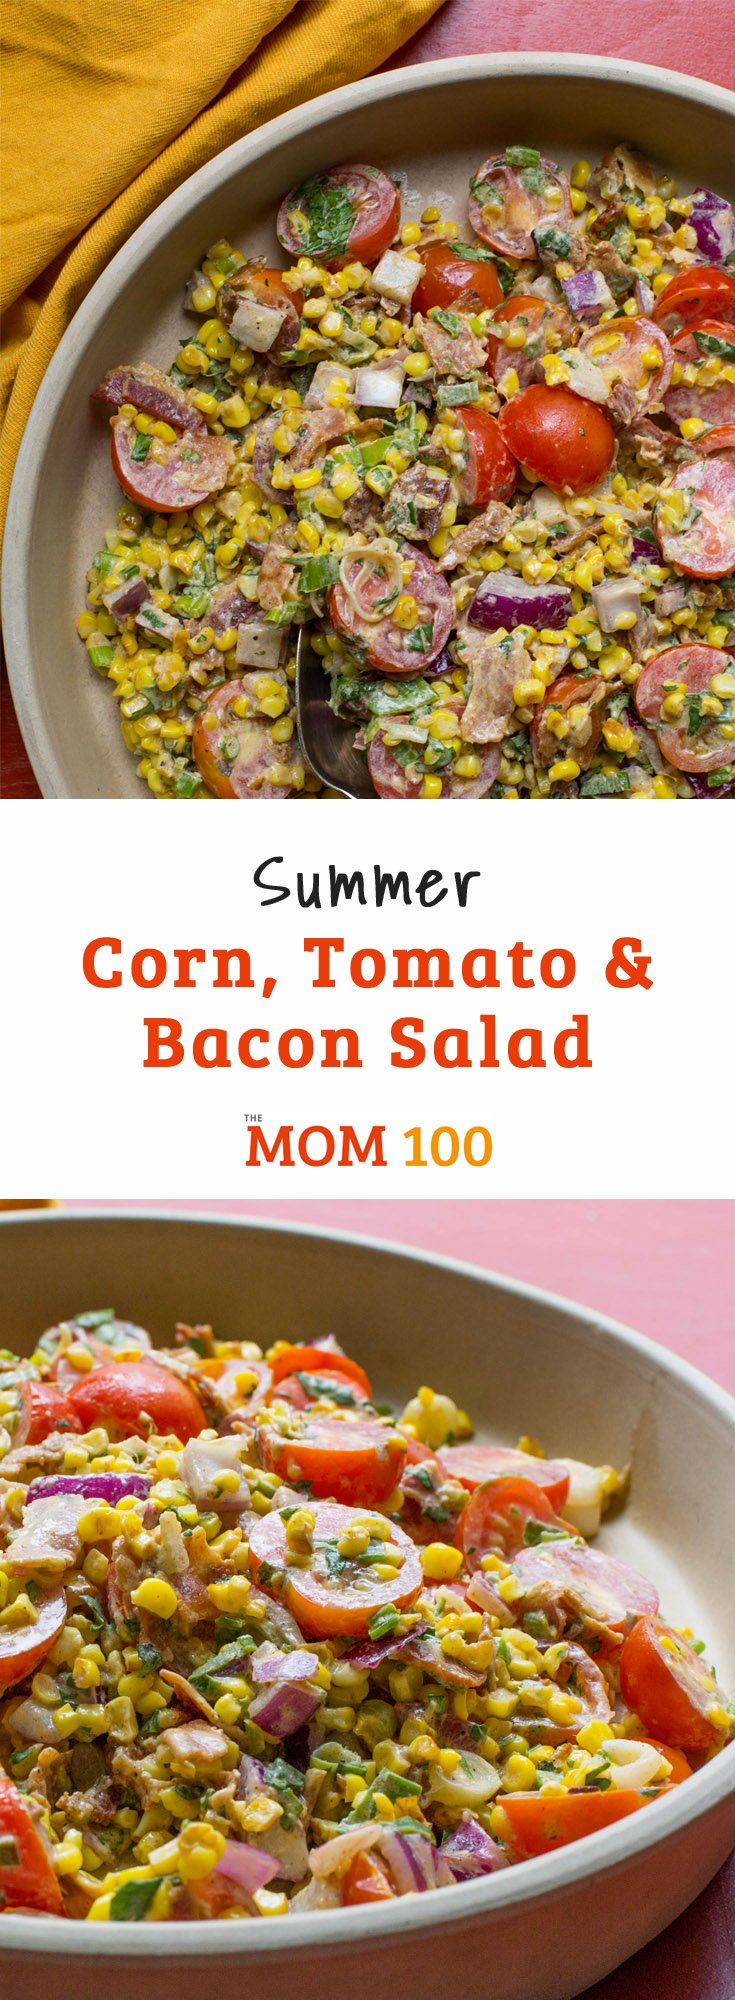 This Summer Corn, Tomato and Bacon Salad highlights the two biggest produce of the season: corn and tomato. Pair it with wheat berries or lettuce.